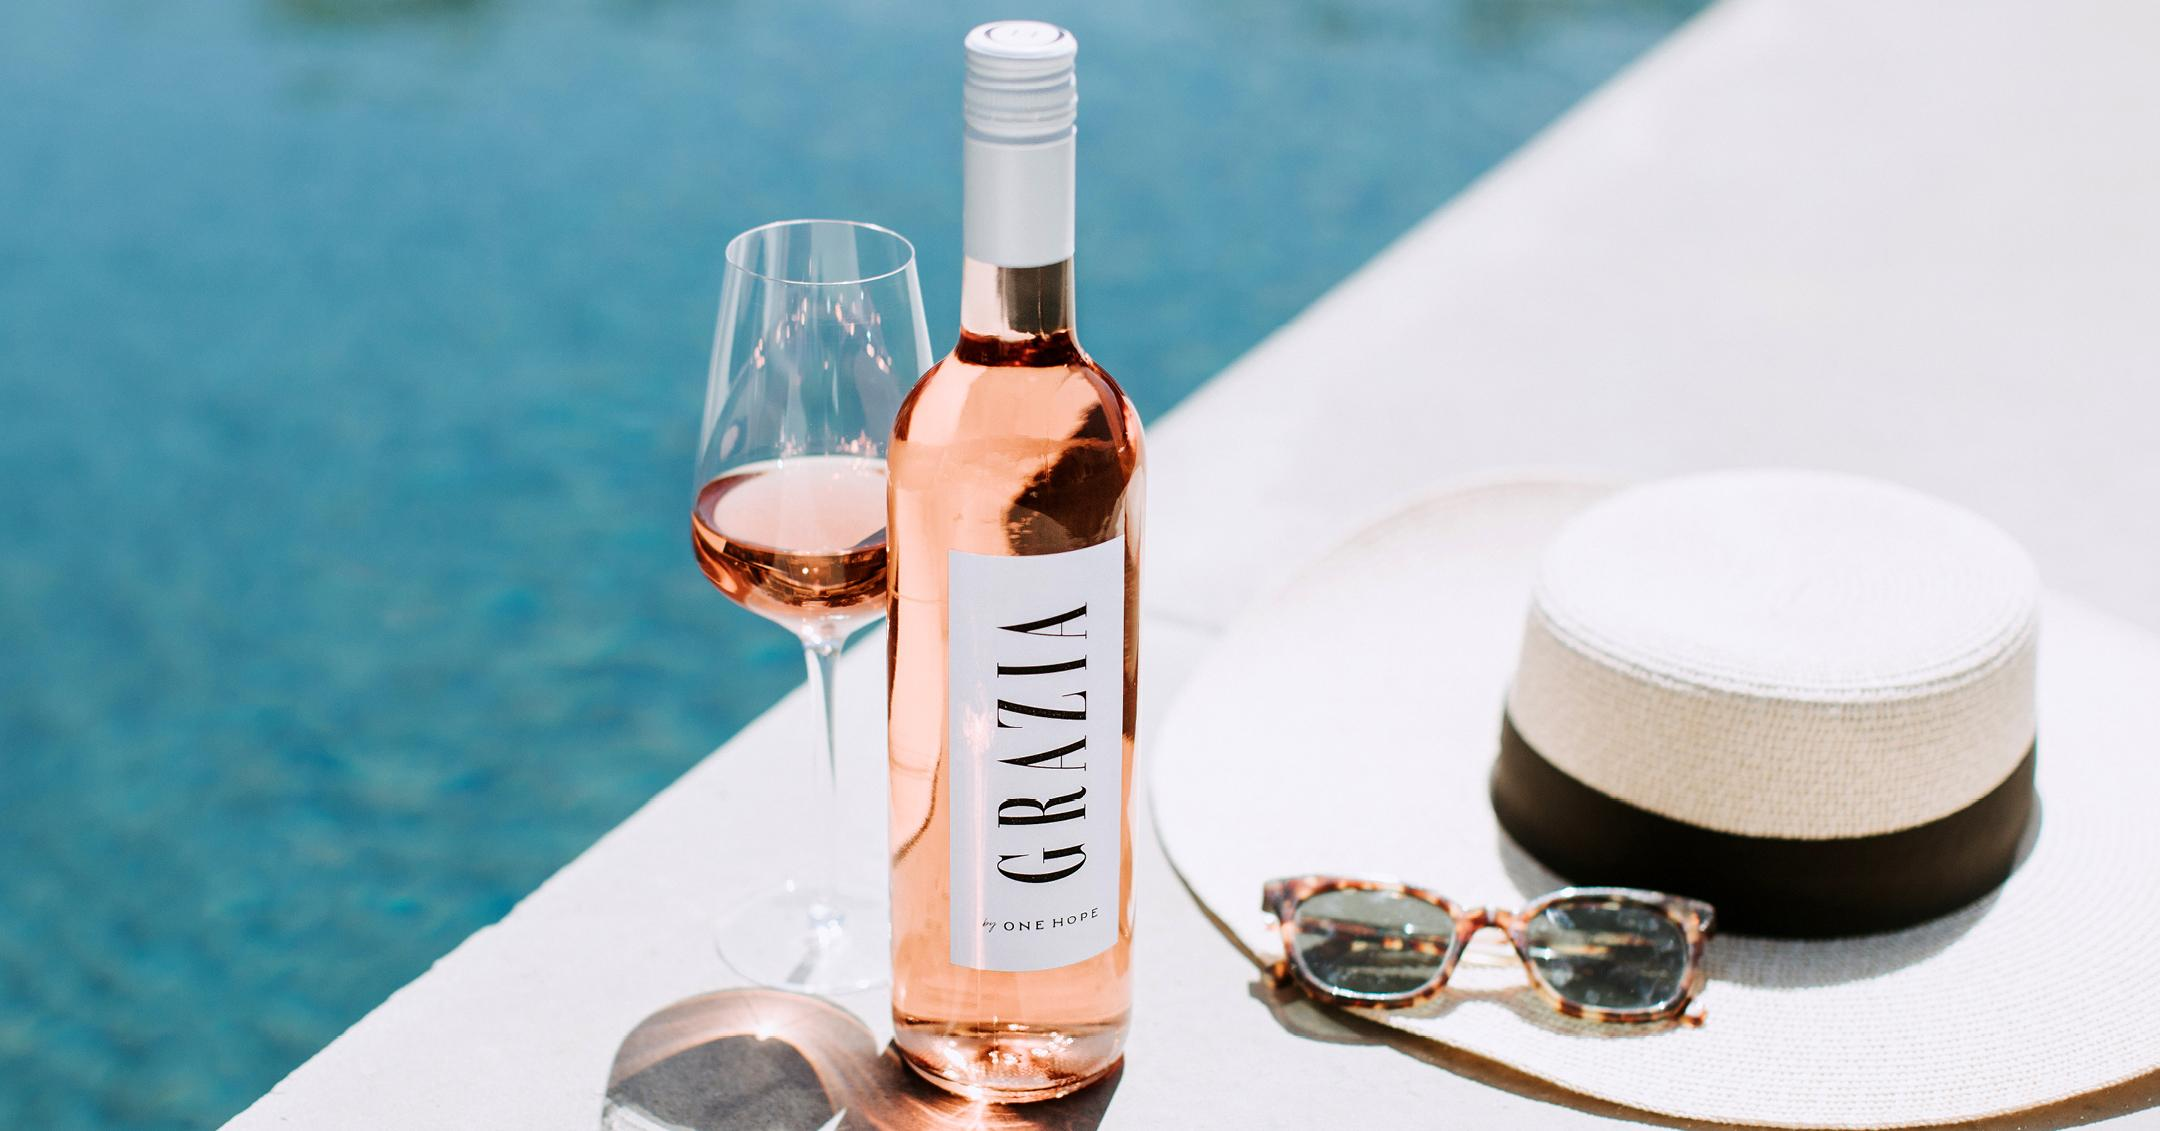 grazia and onehope wines rose collab sip of the summer